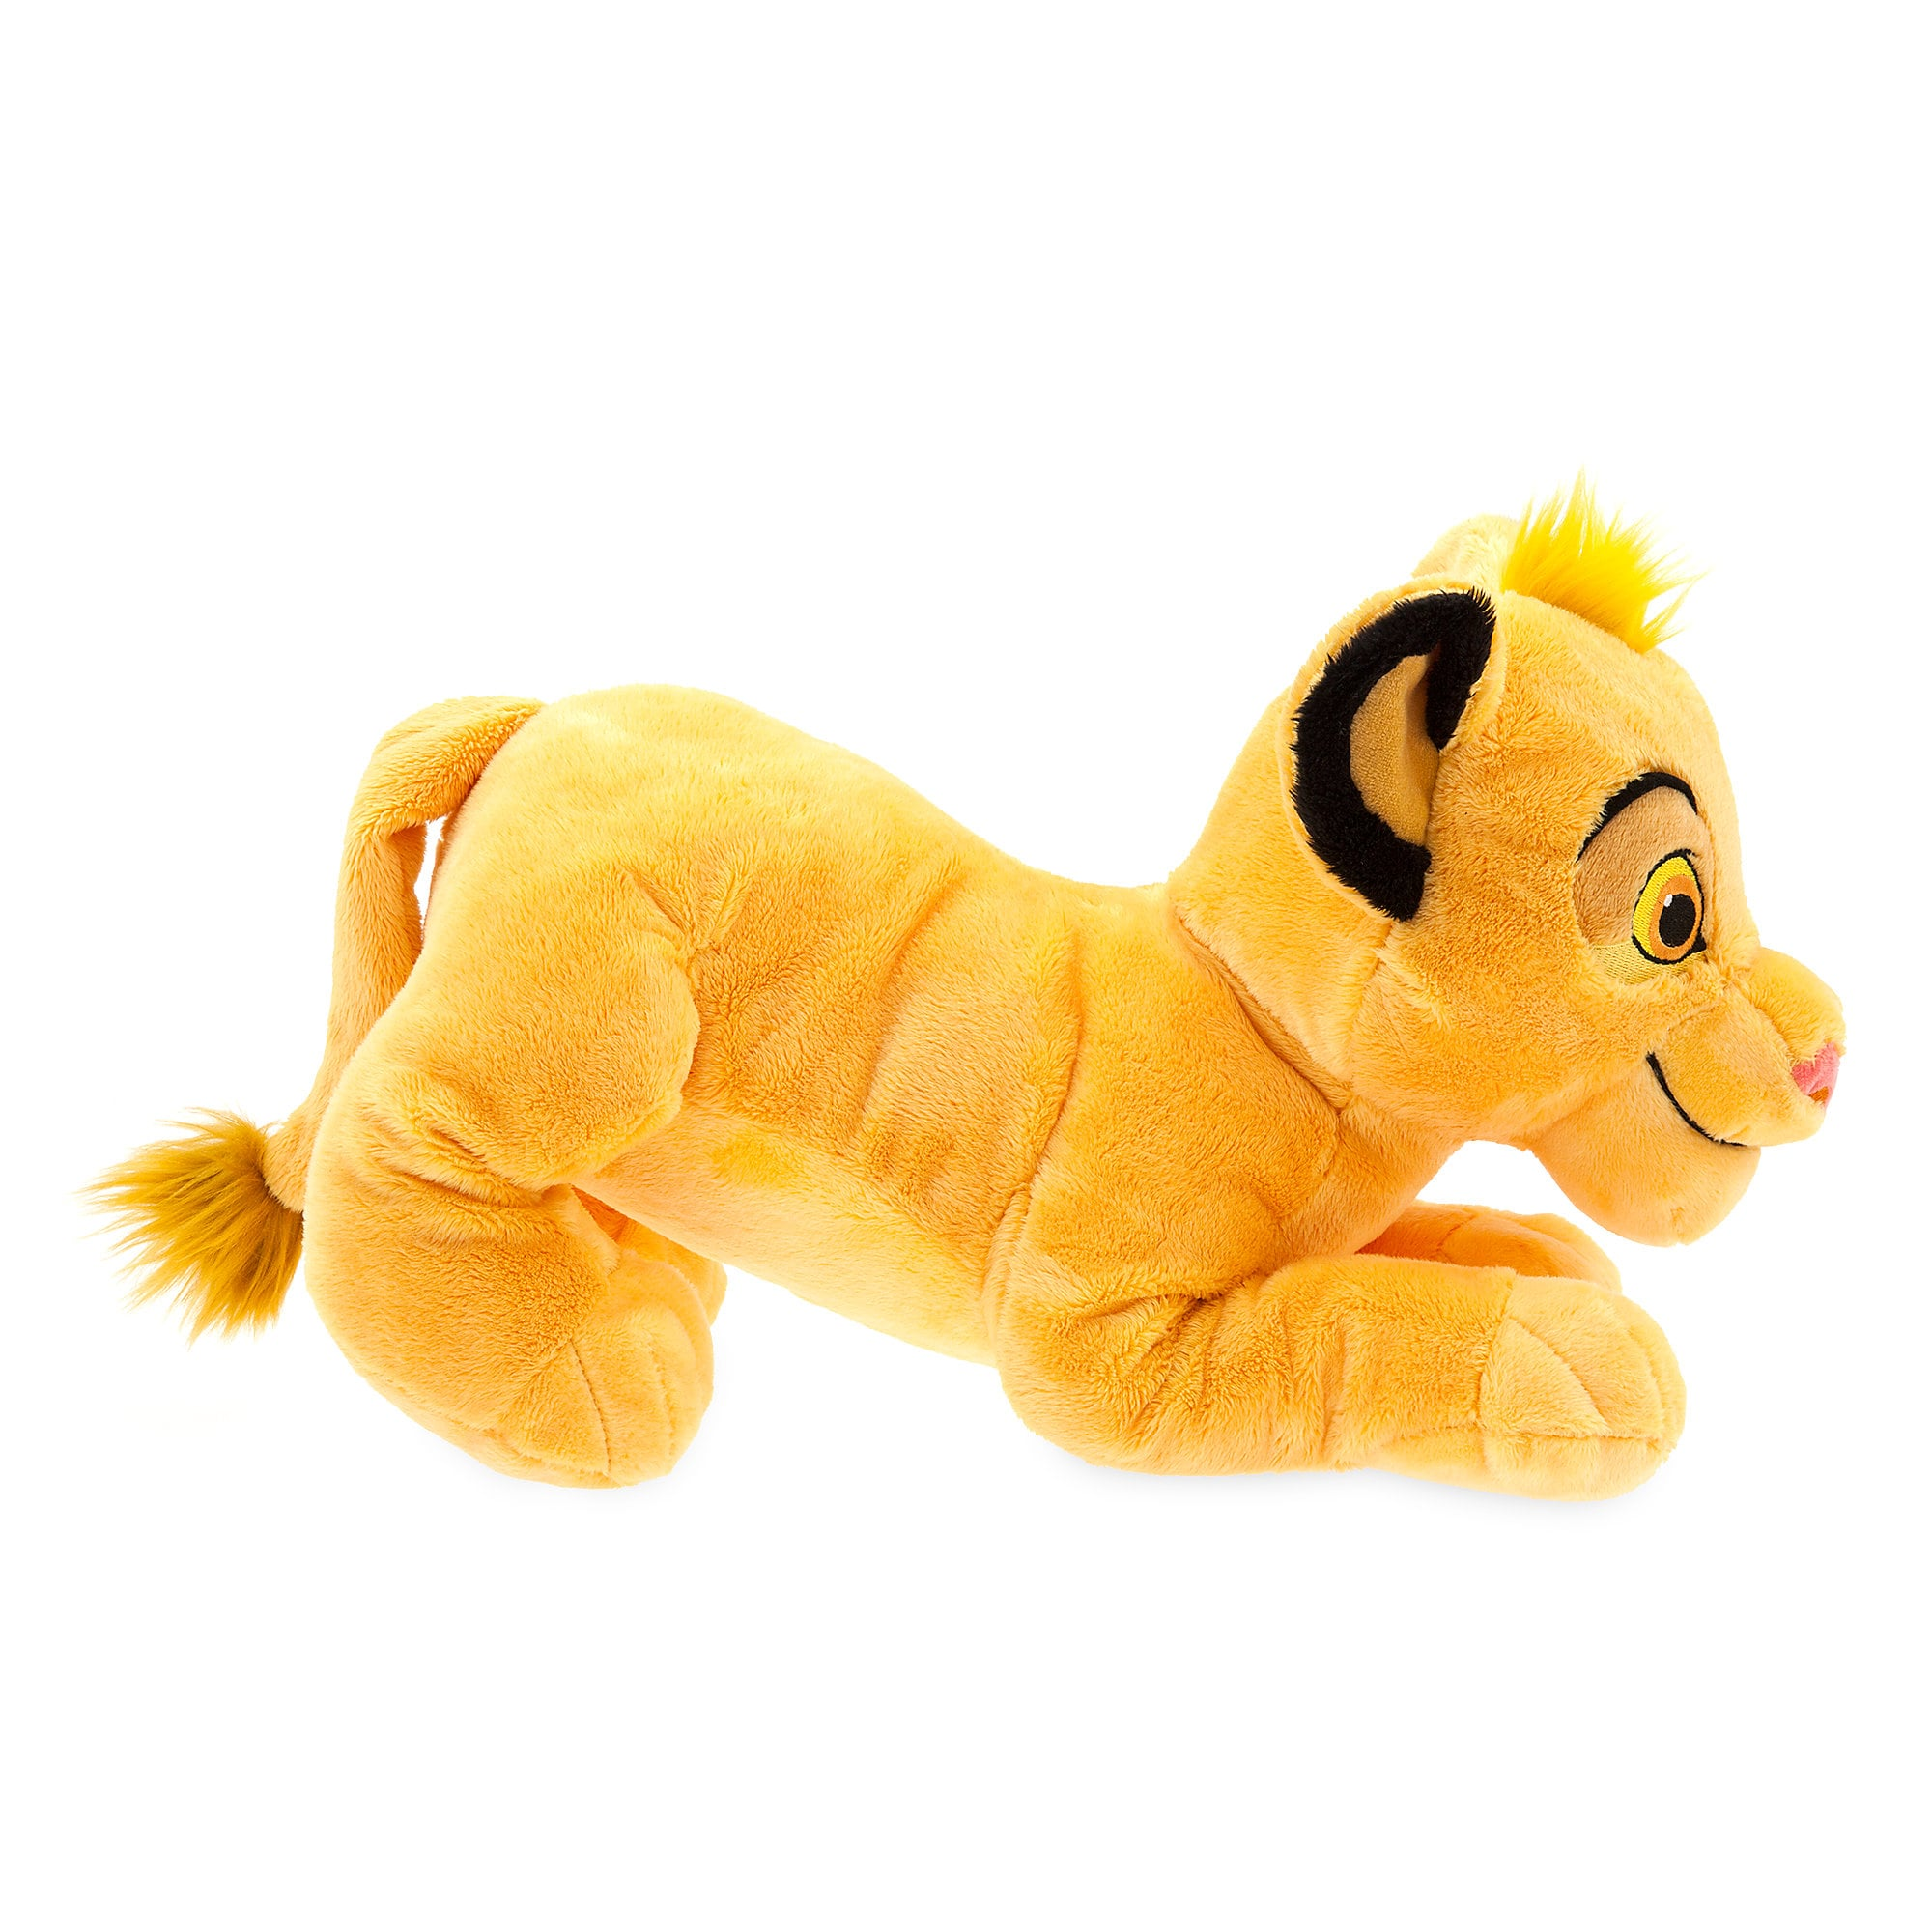 Simba Plush - The Lion King - Medium - 17''